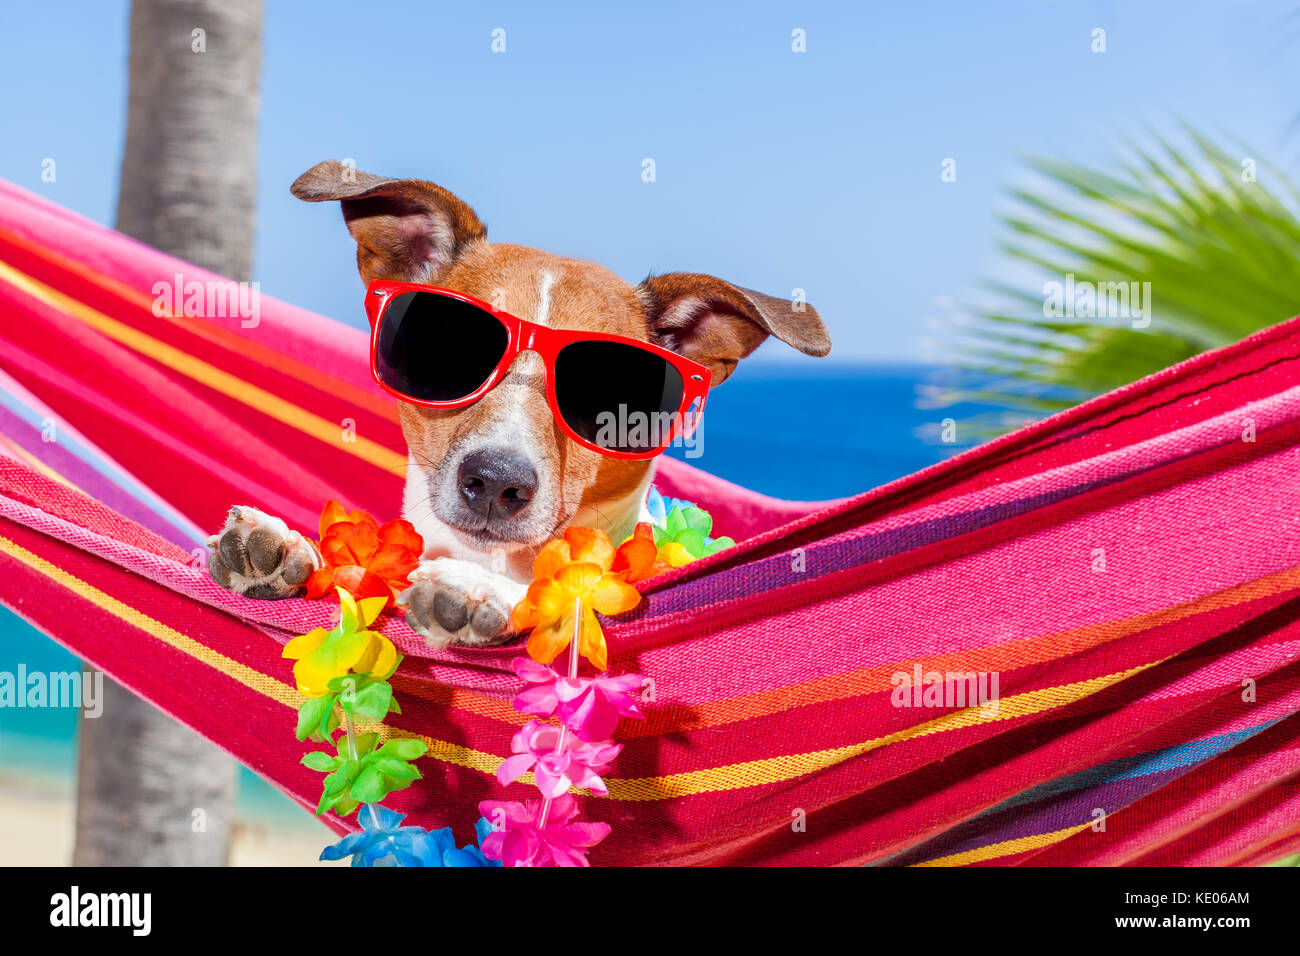 Dog Deck Chair Stock Photos Amp Dog Deck Chair Stock Images